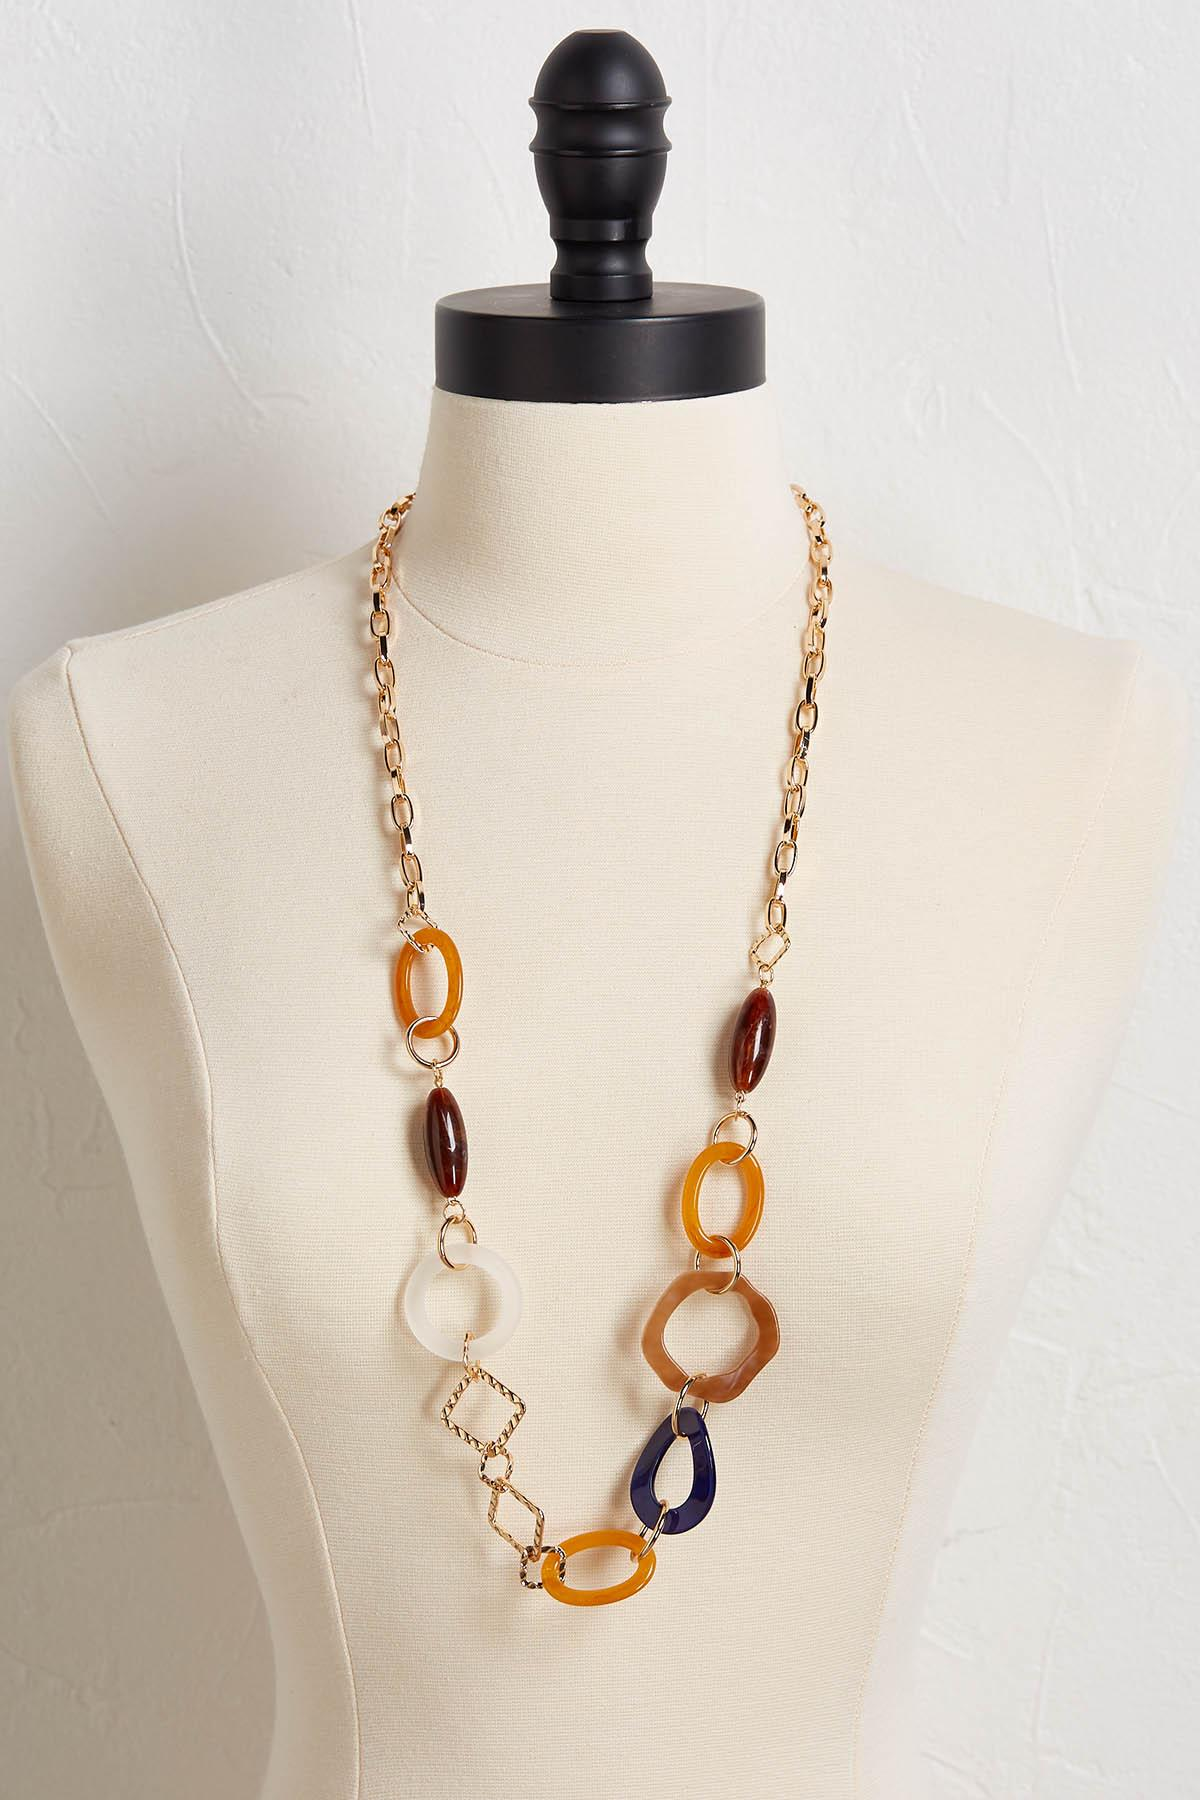 Naturally Linked Together Necklace